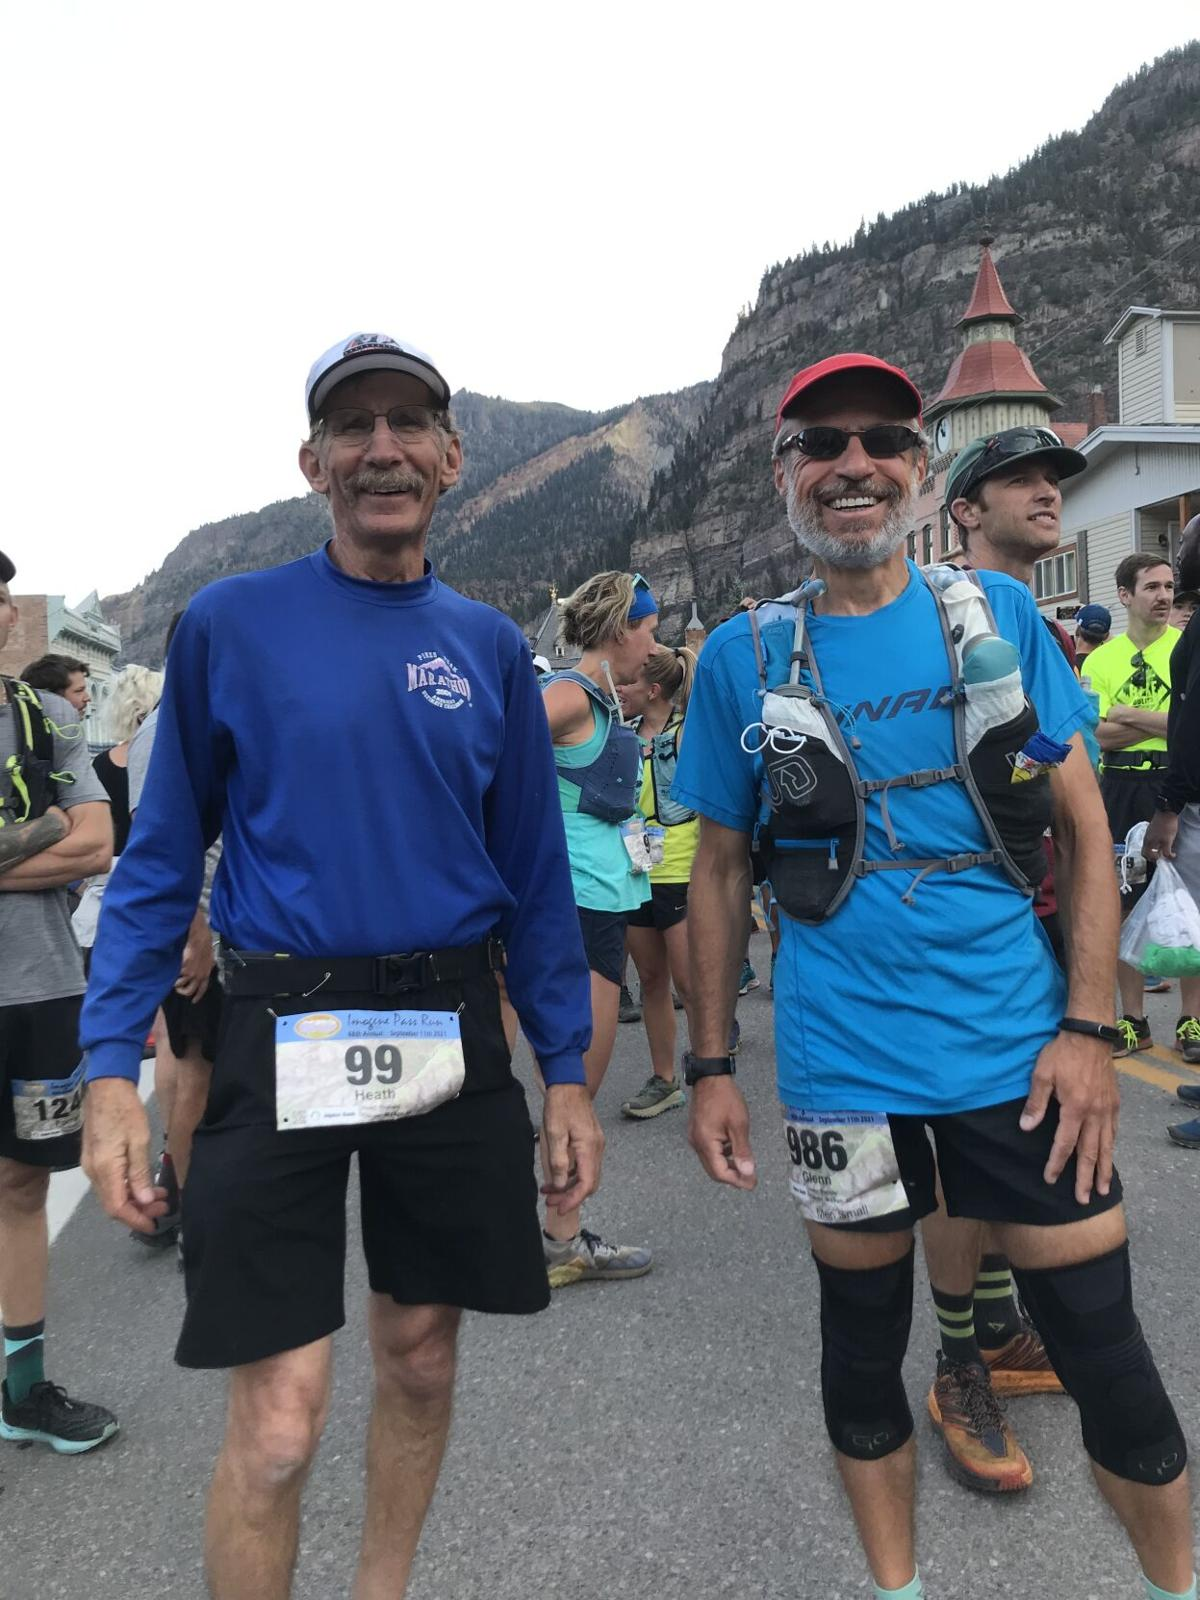 OUTDOORS: A race up Imogene Pass on foot